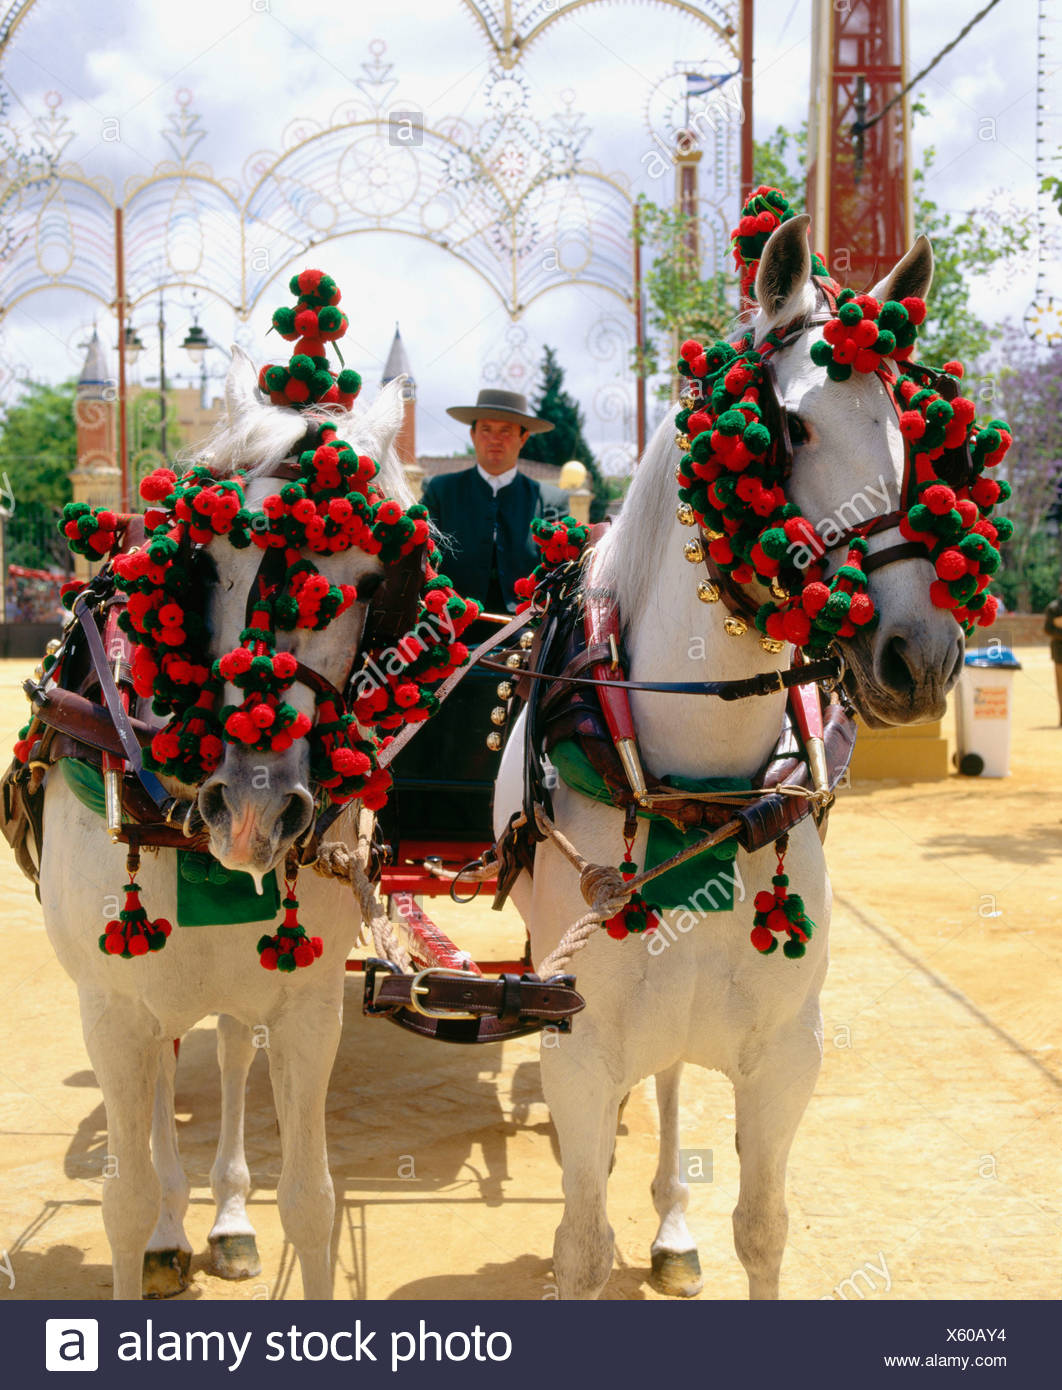 Andalusia Feria Party Fete Jerez De La Frontera Man No Model Release Horse Coach Spain Europe